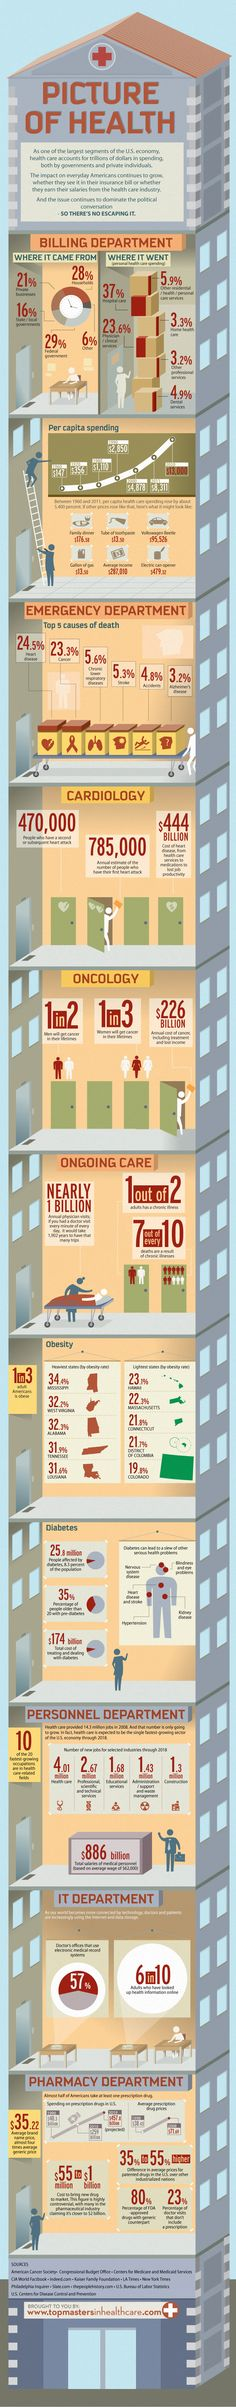 A Picture of Healthcare in America  http://www.businesspundit.com/a-picture-of-healthcare-in-america/